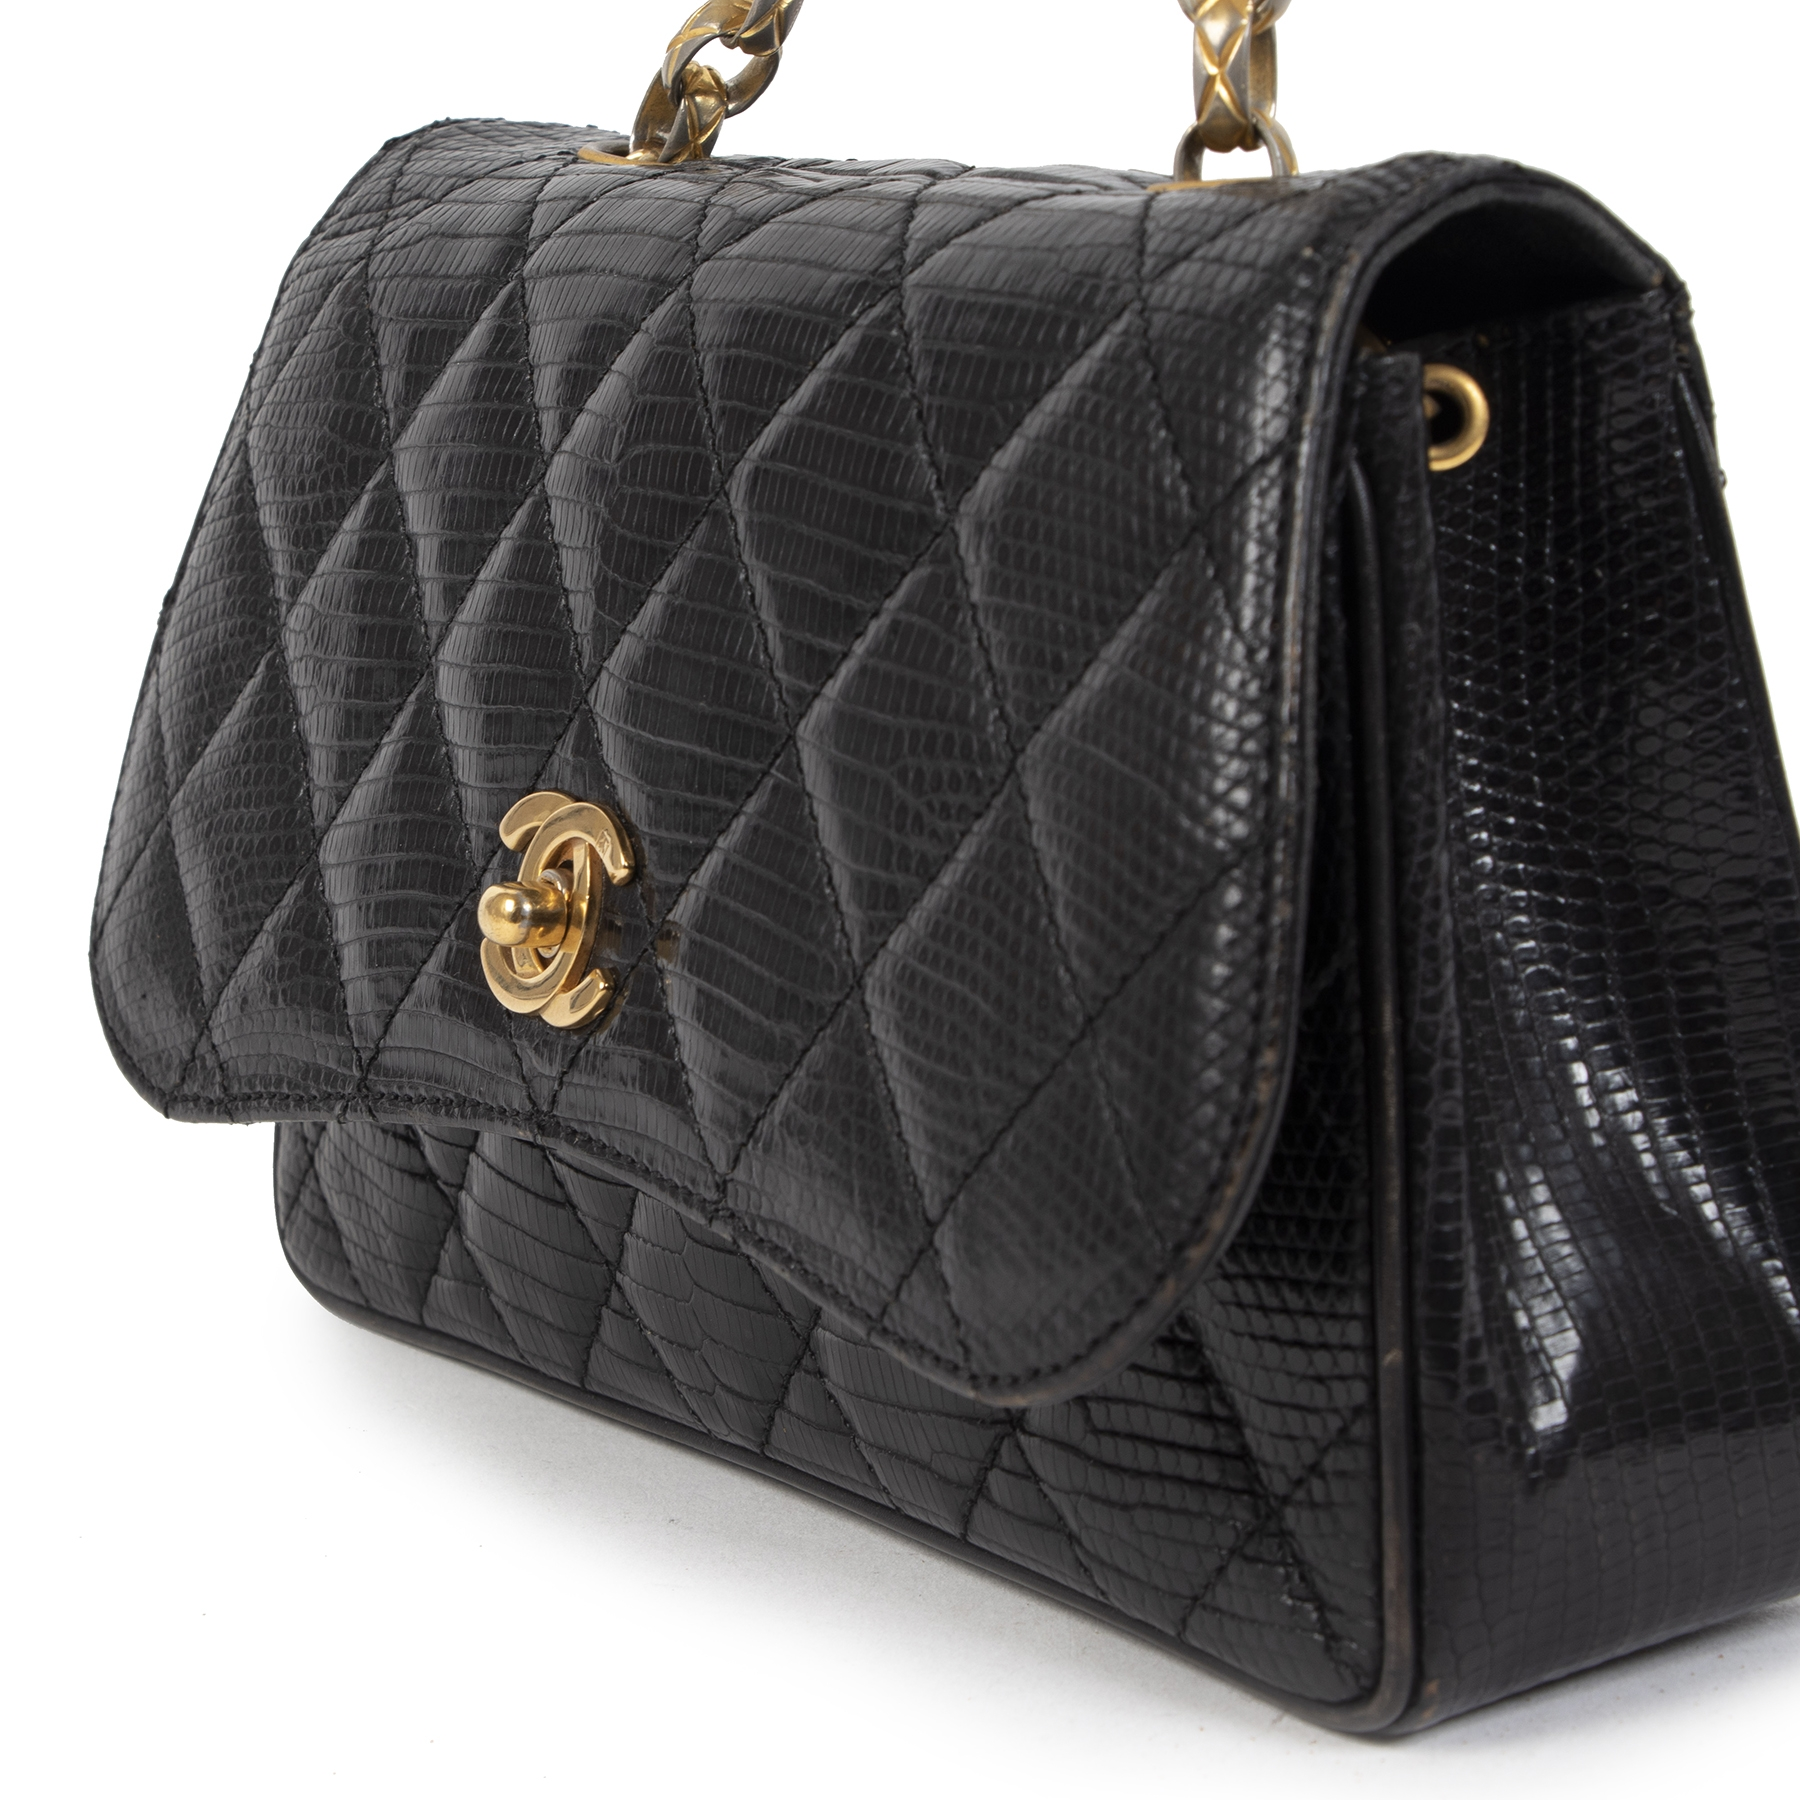 Chanel Vintage Black Lizard Evening Bag  veilig online